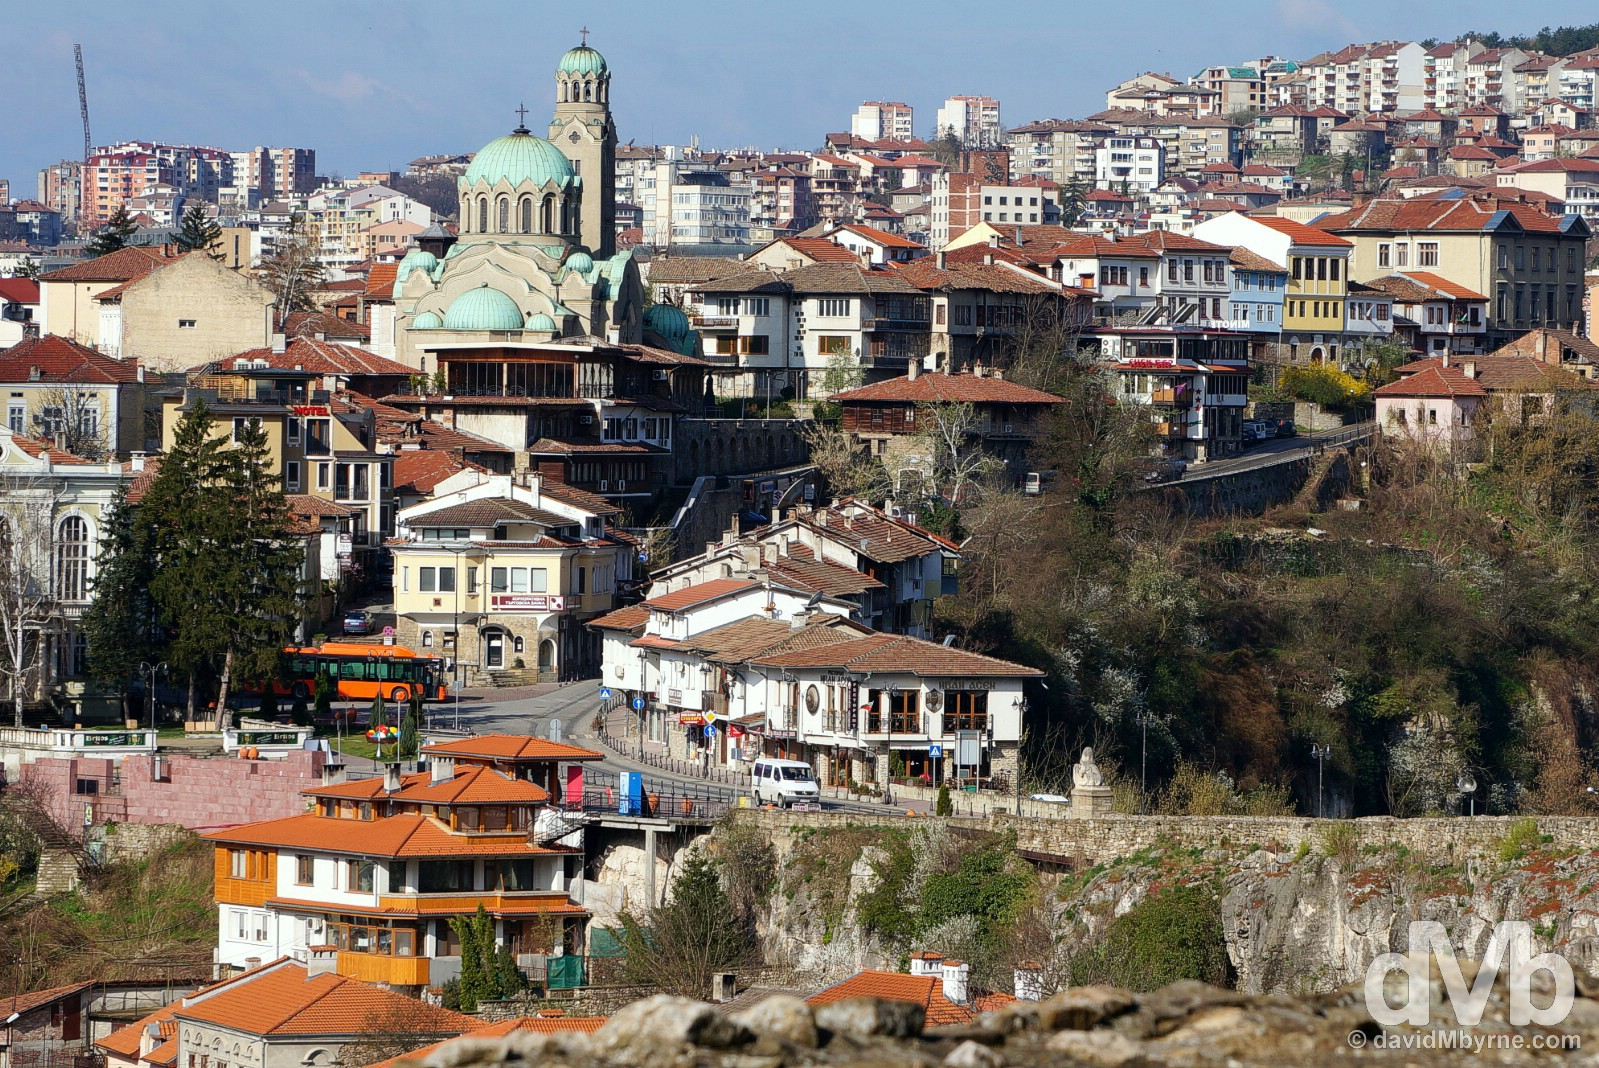 Veliko Tarnovo as seen from the walls of the Tsarevets Fortress. Veliko Tarnovo, Bulgaria. March 31, 2015.